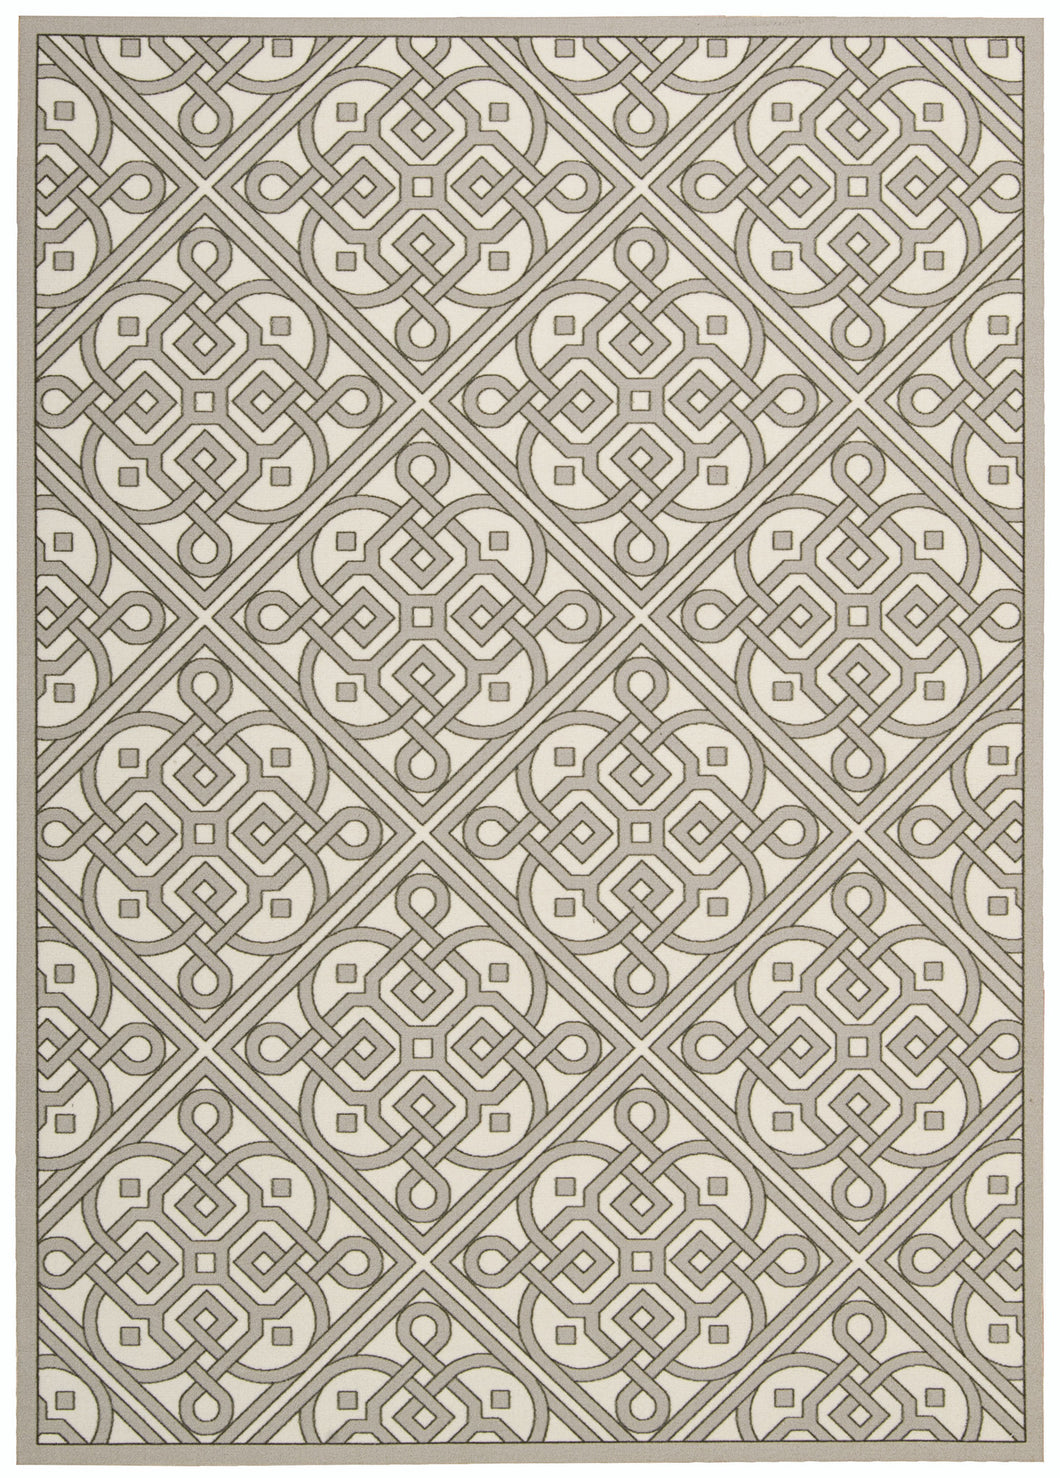 Waverly Sun & Shade Lace It Up Stone Area Rug By Nourison SND31 STONE